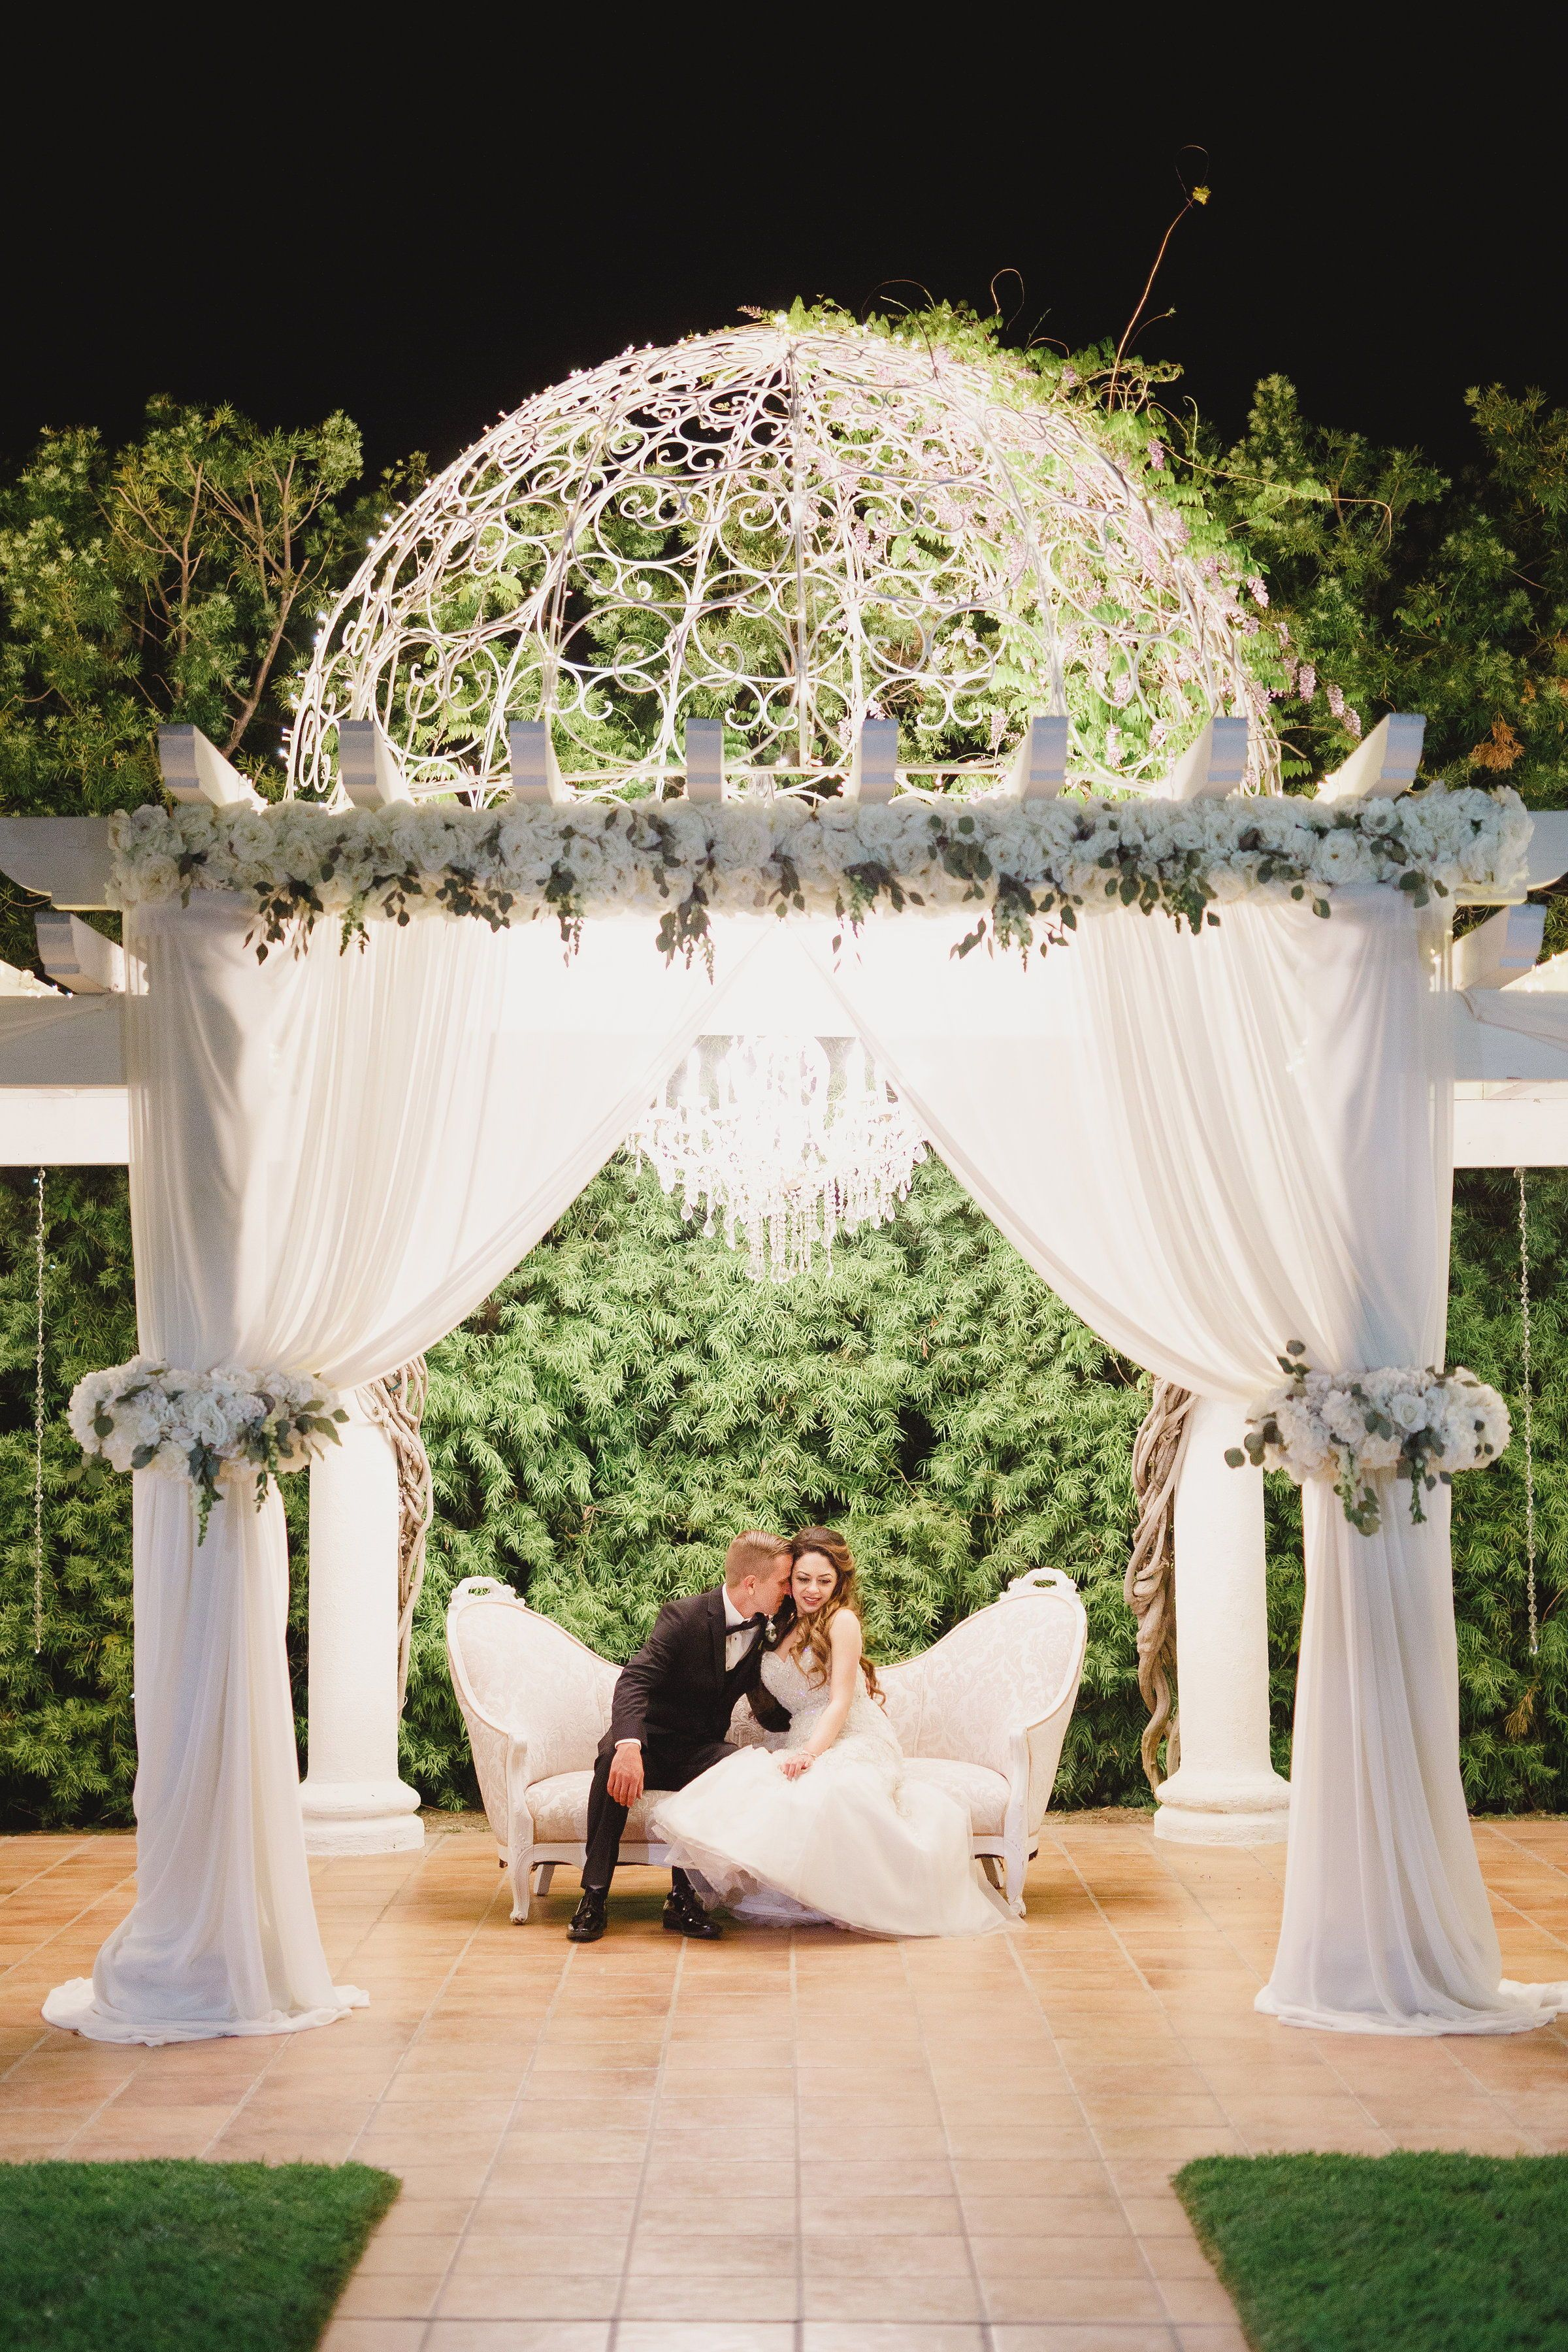 Night Time Photo At Villa De Amore In Temecula Ca One Of The Best Private Esta Southern California Wedding Venues Estate Wedding Venue Private Estate Wedding